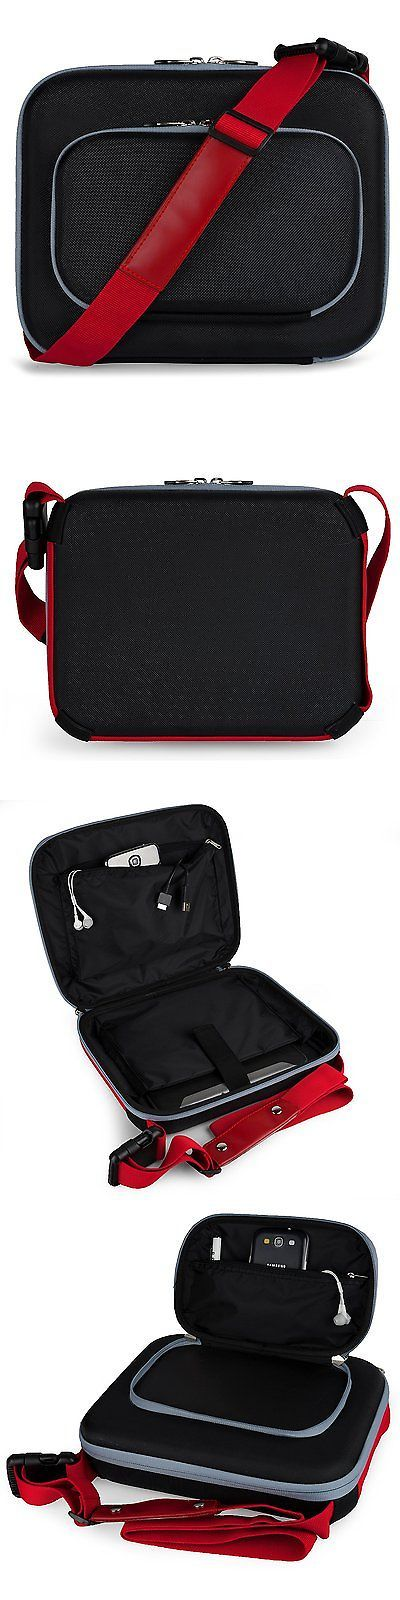 Cases Covers and Skins: Red Hard Shell Nylon Cube Carrying Case For Phillips 9 Inch Portable Dvd Player -> BUY IT NOW ONLY: $37.94 on eBay!